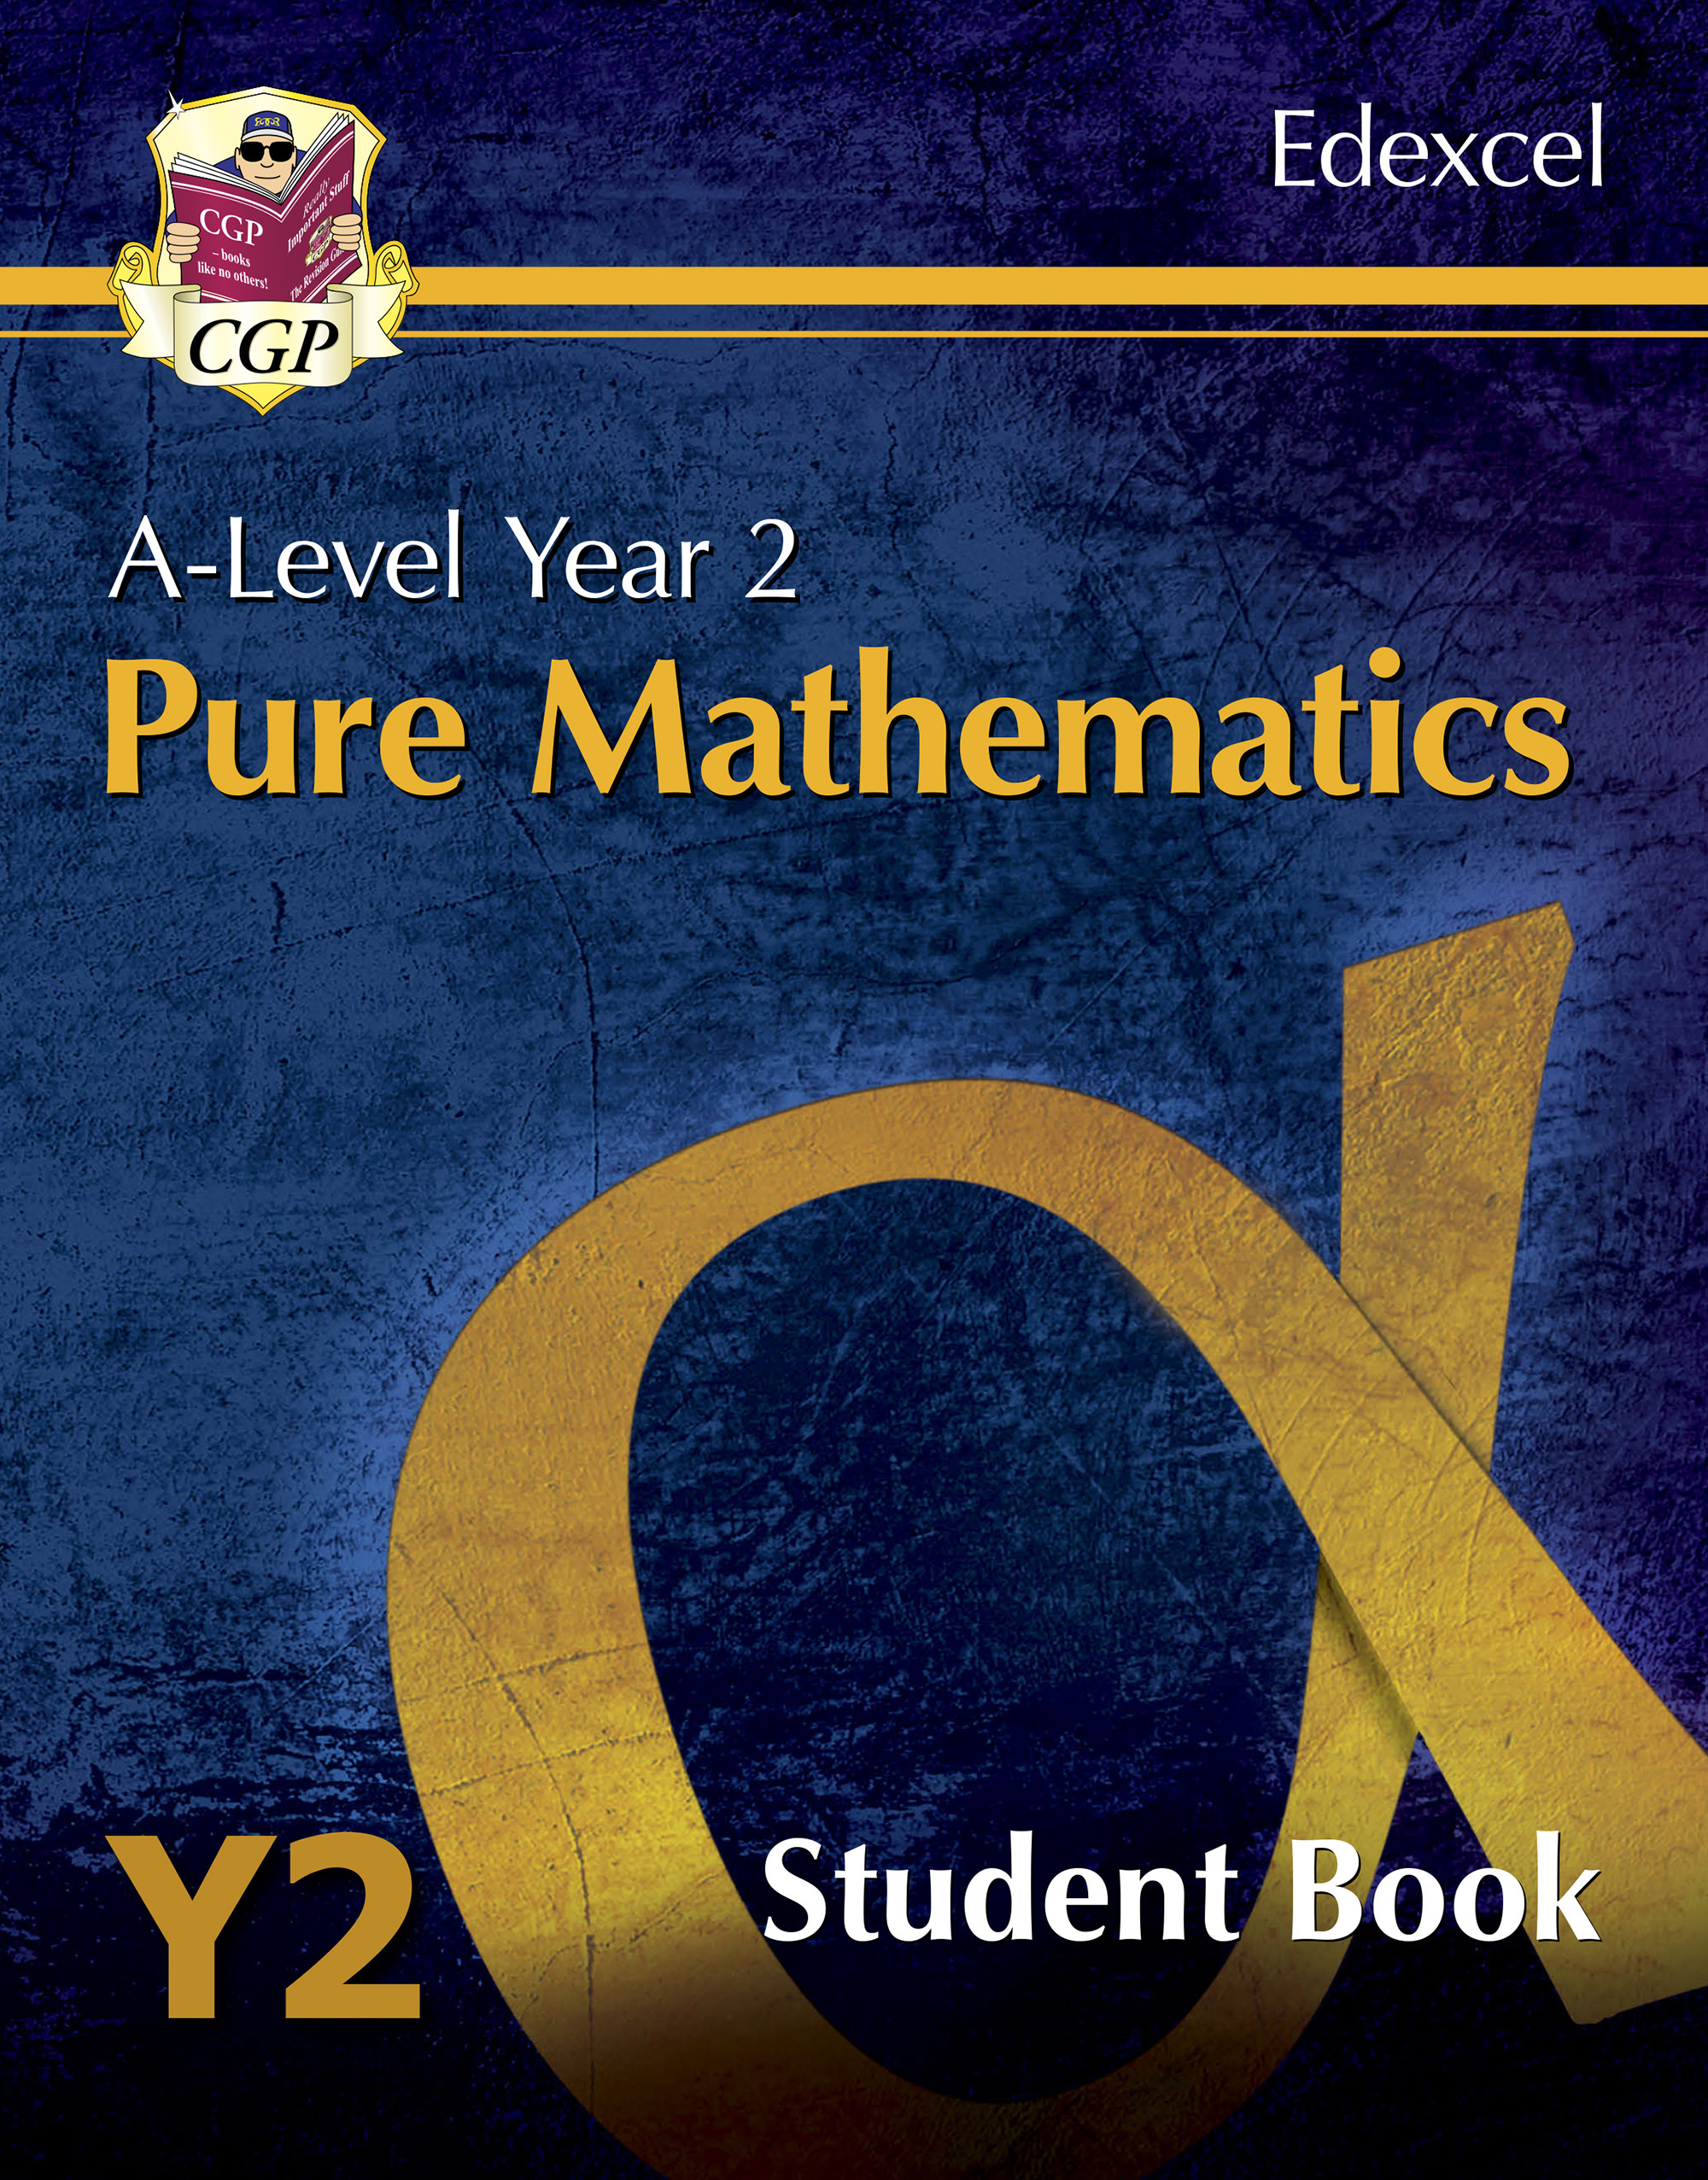 MEPMT61DK - New A-Level Maths for Edexcel: Pure Mathematics - Year 2 Student Book